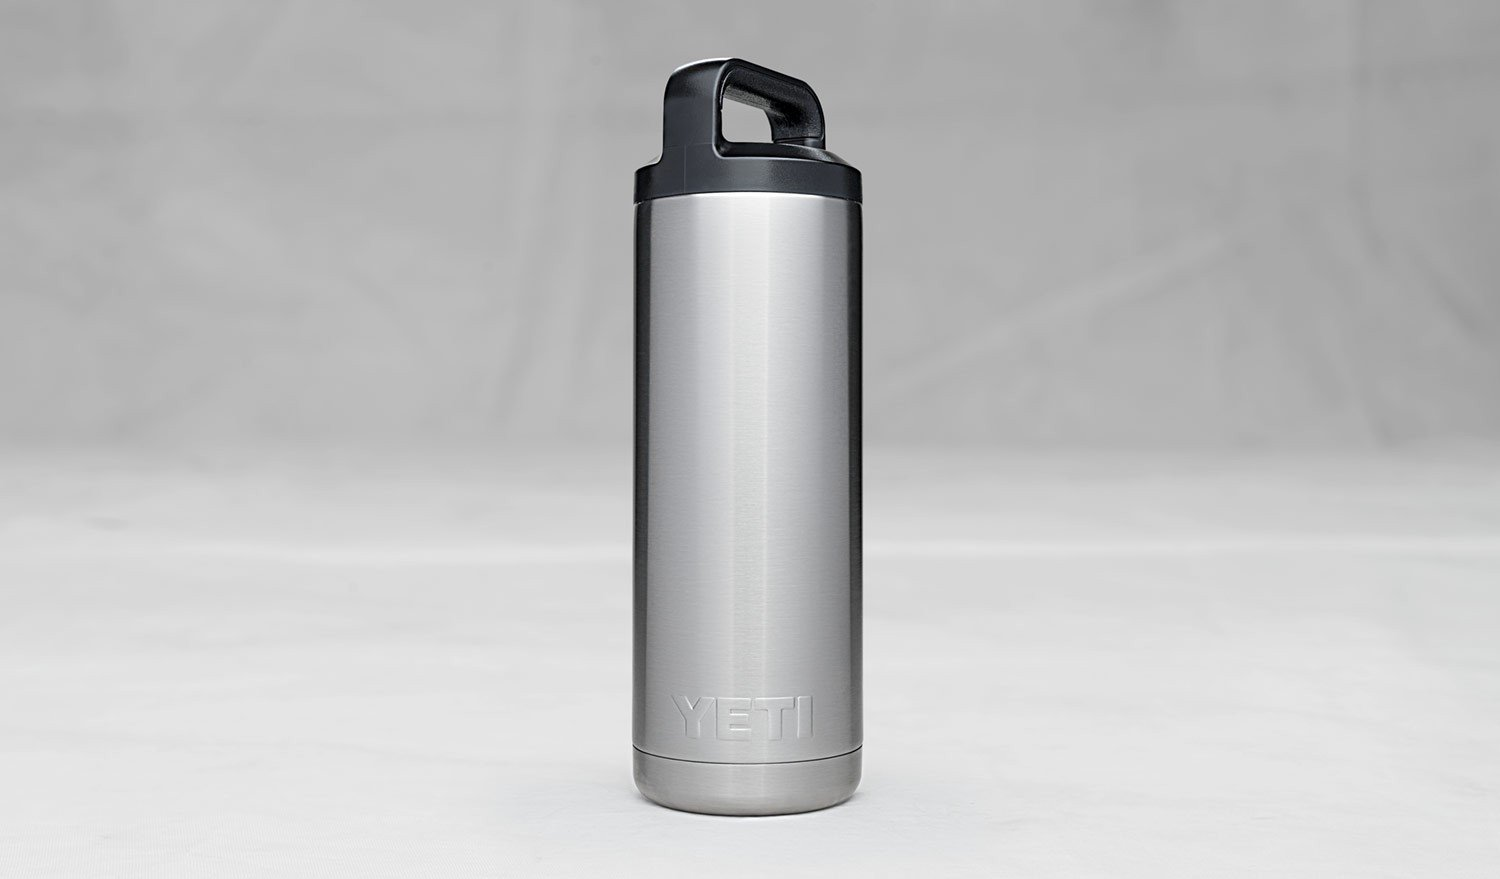 YETI Rambler 18 oz Stainless Steel Vacuum Insulated Bottle with Cap by YETI (Image #3)